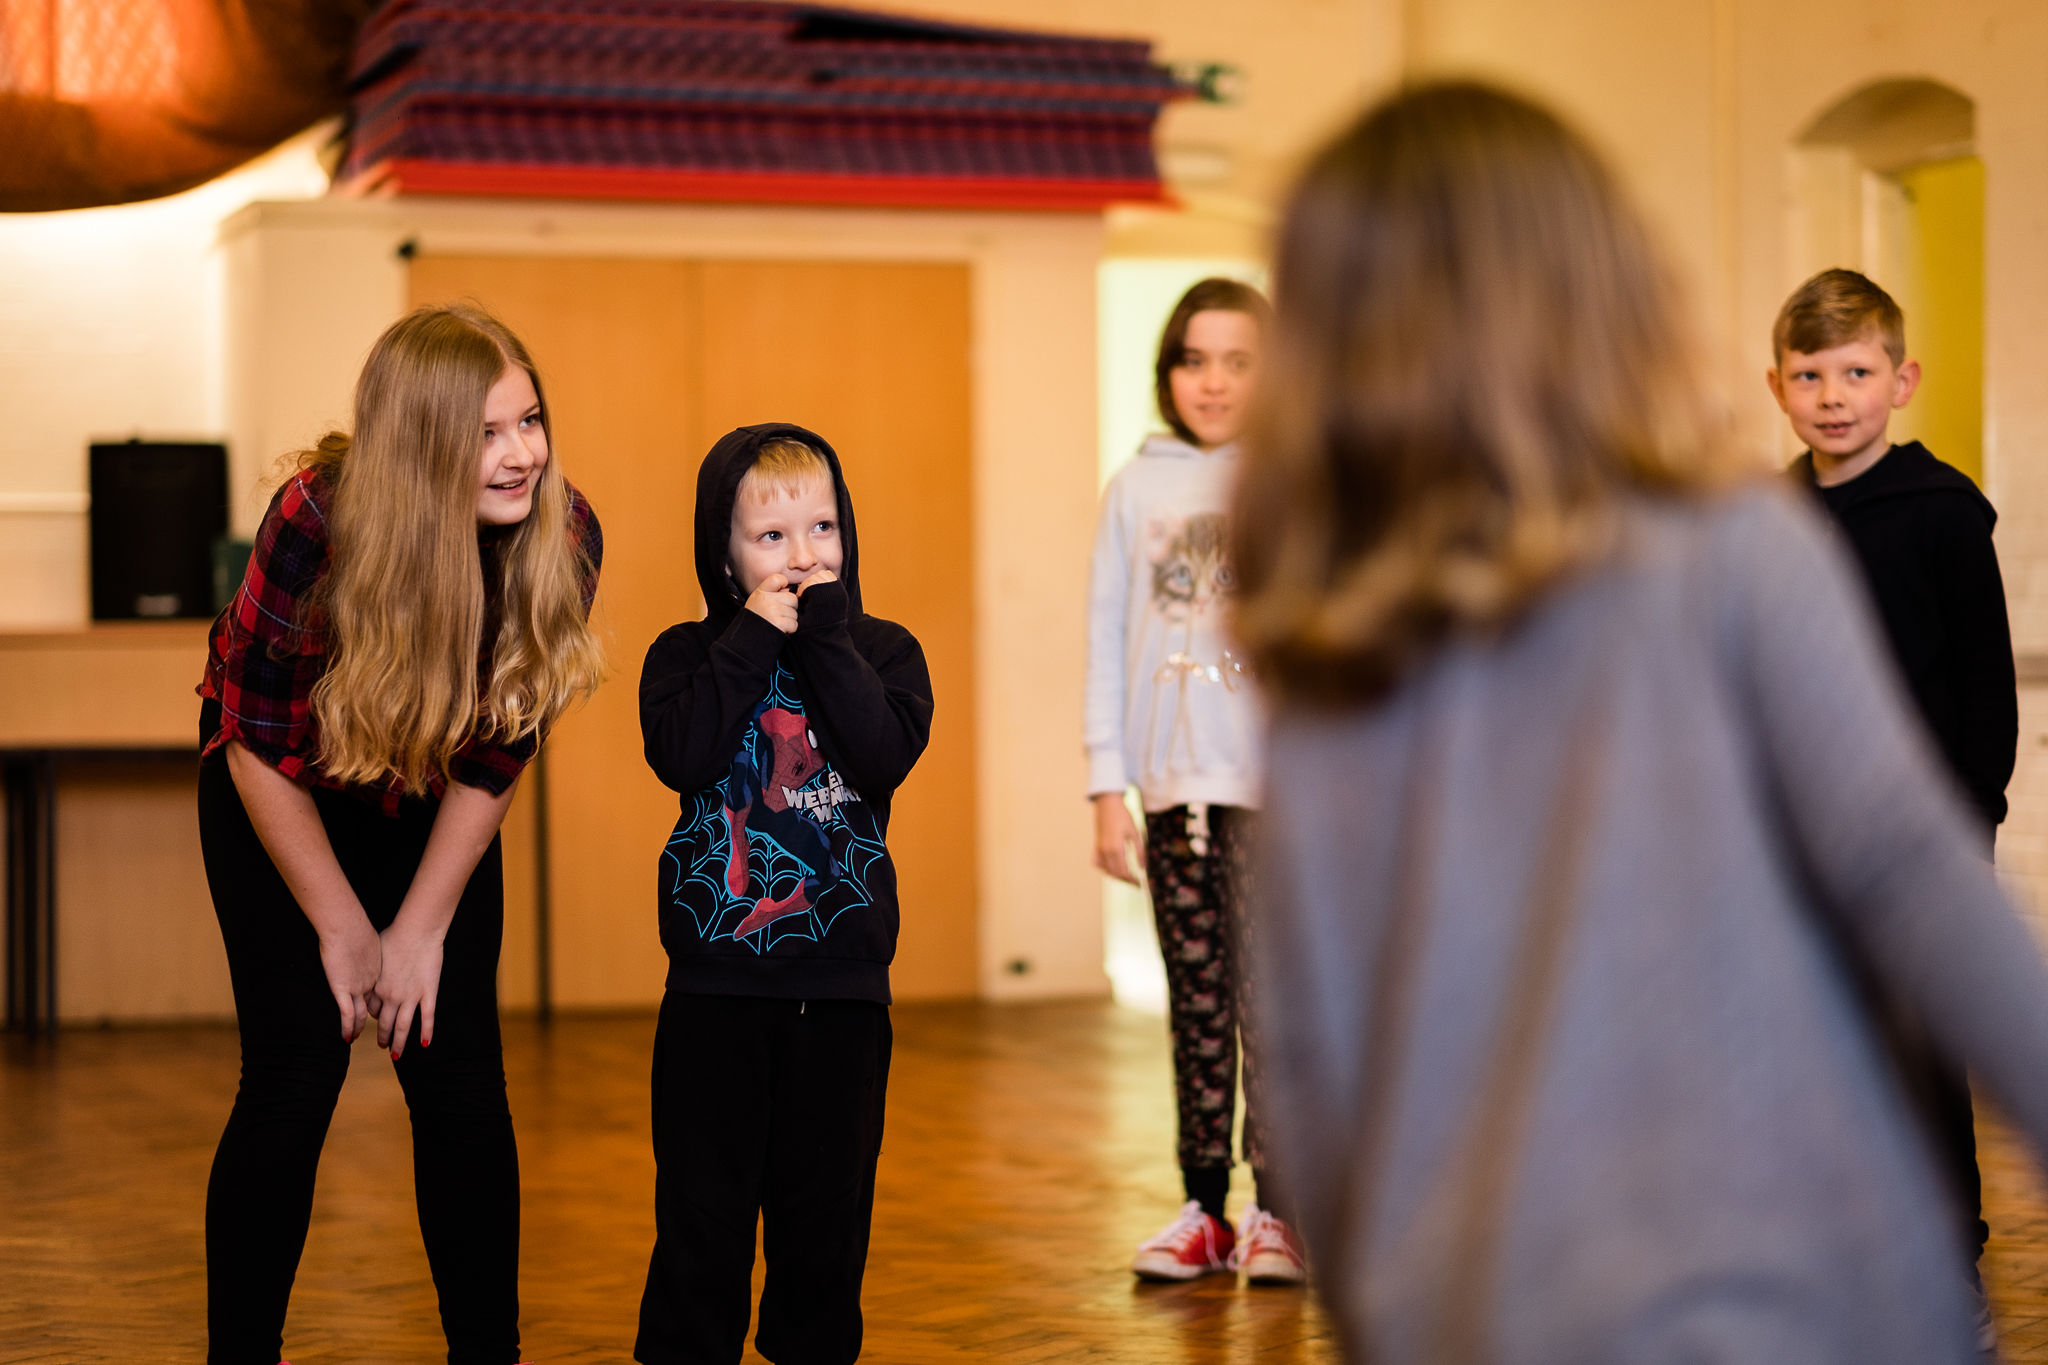 2019.02.09RestokeSmallFolkDanceSingingWorkshop-JennyHarper-12.jpg